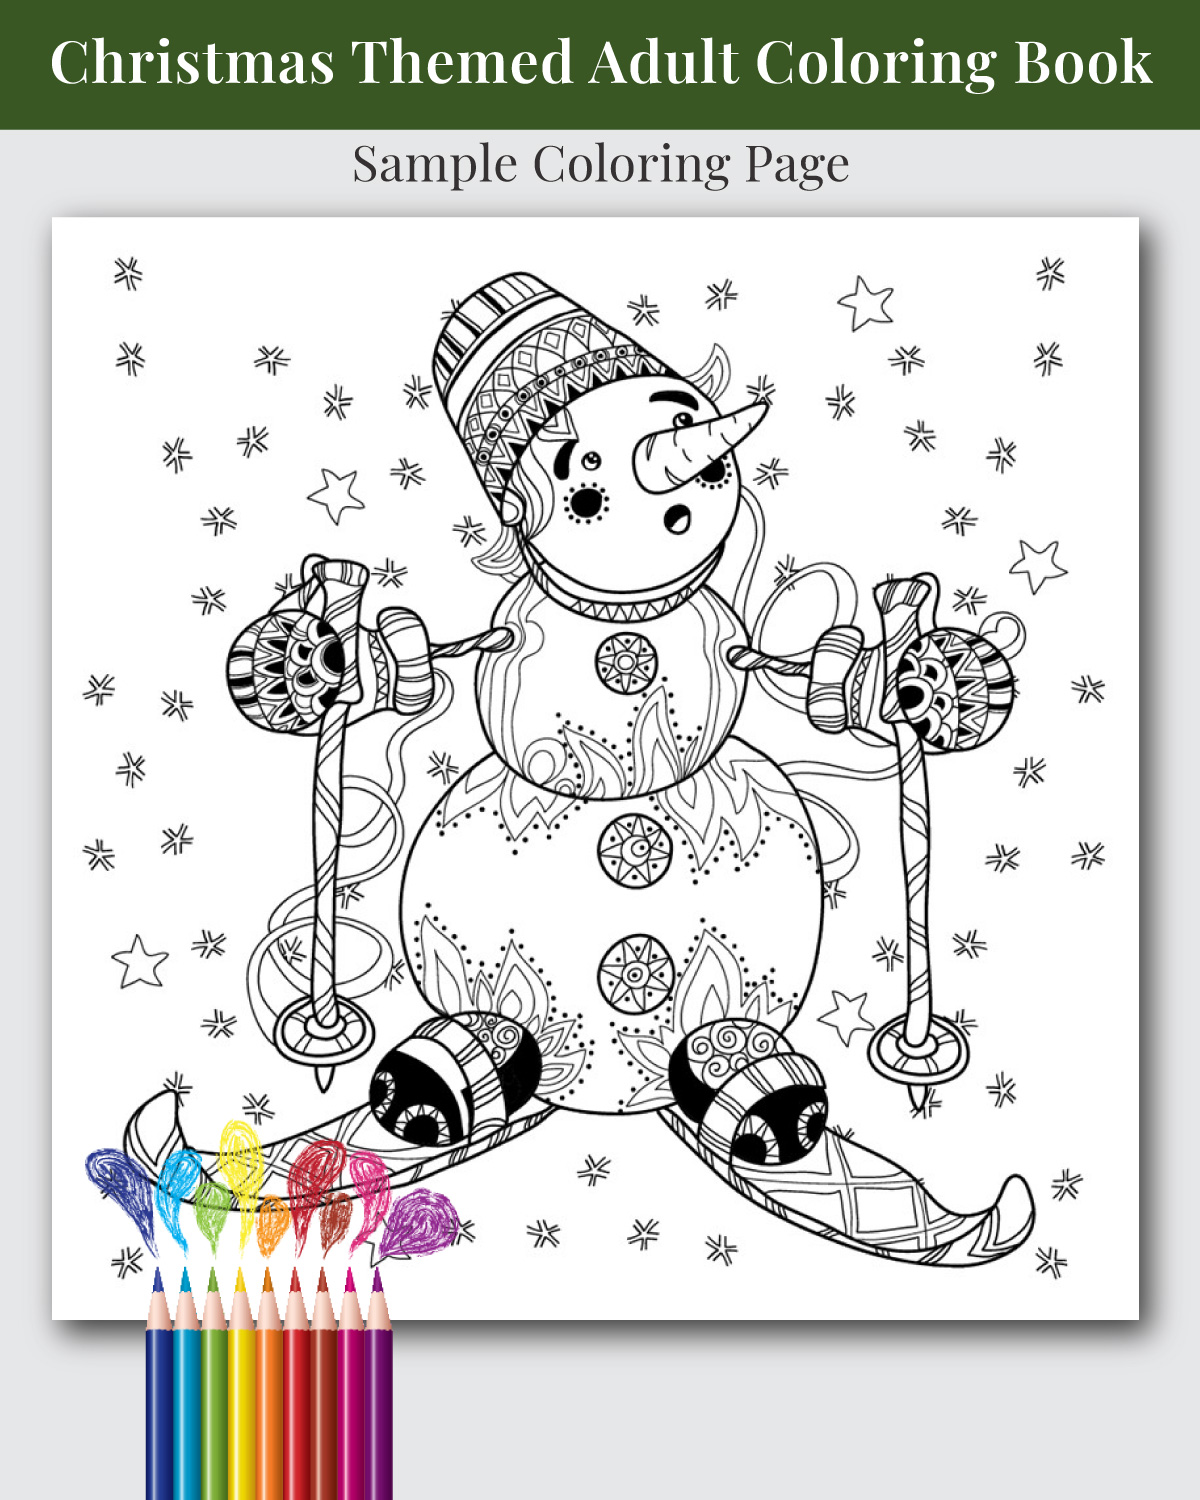 Christmas-Adult-Coloring-Book-Sample-03